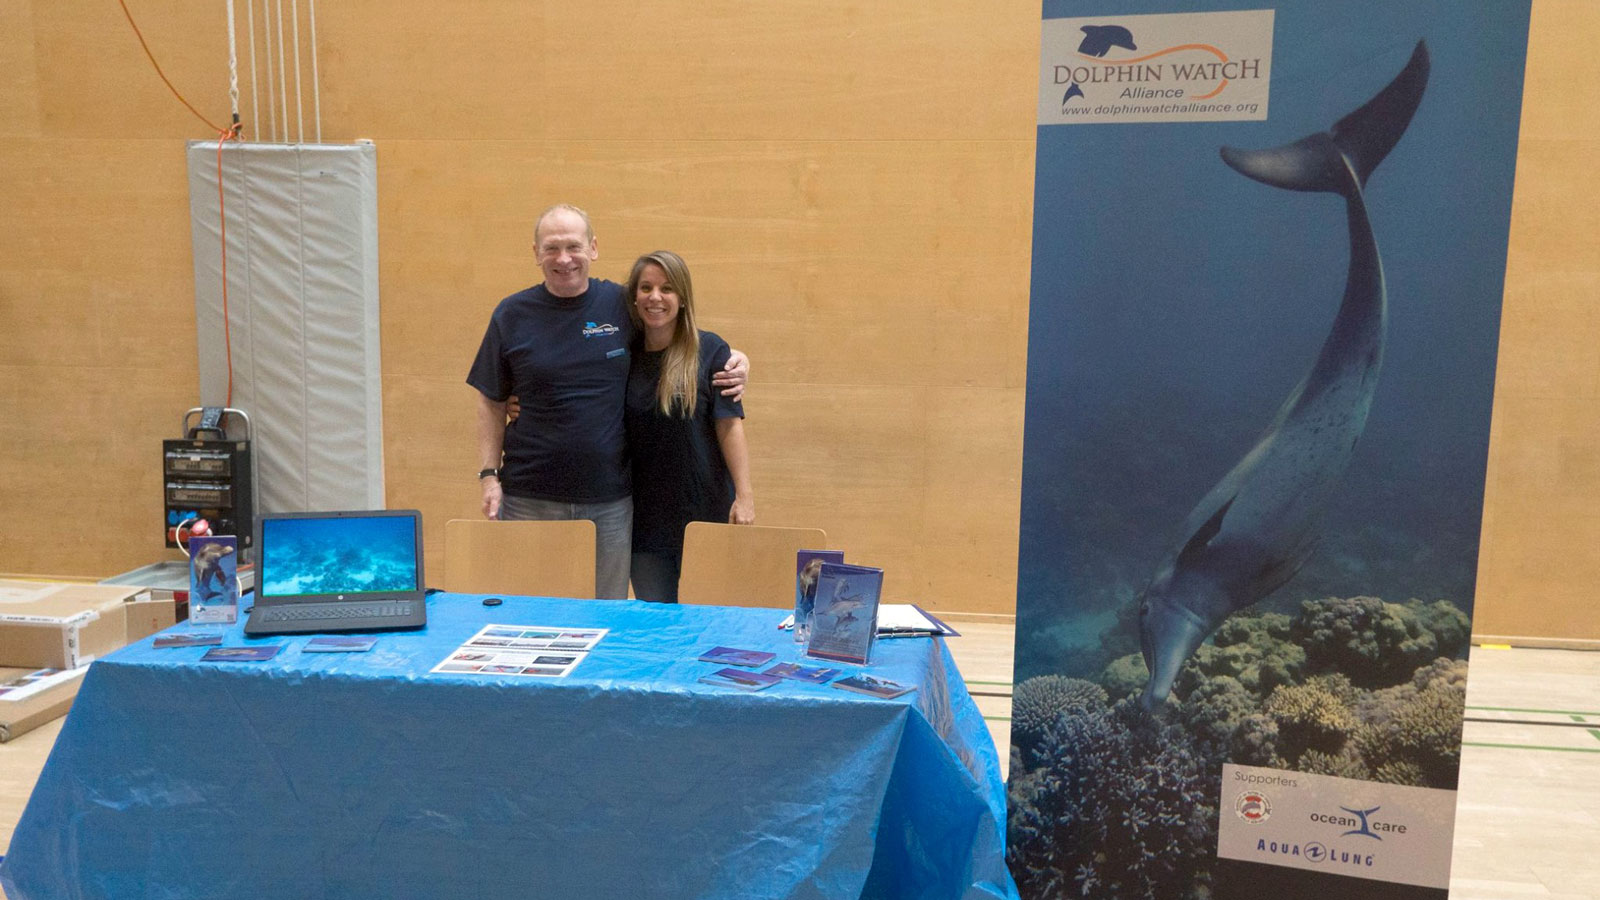 Sandra Gross and Marcus Gisi at the Underwater Festival in Gossau